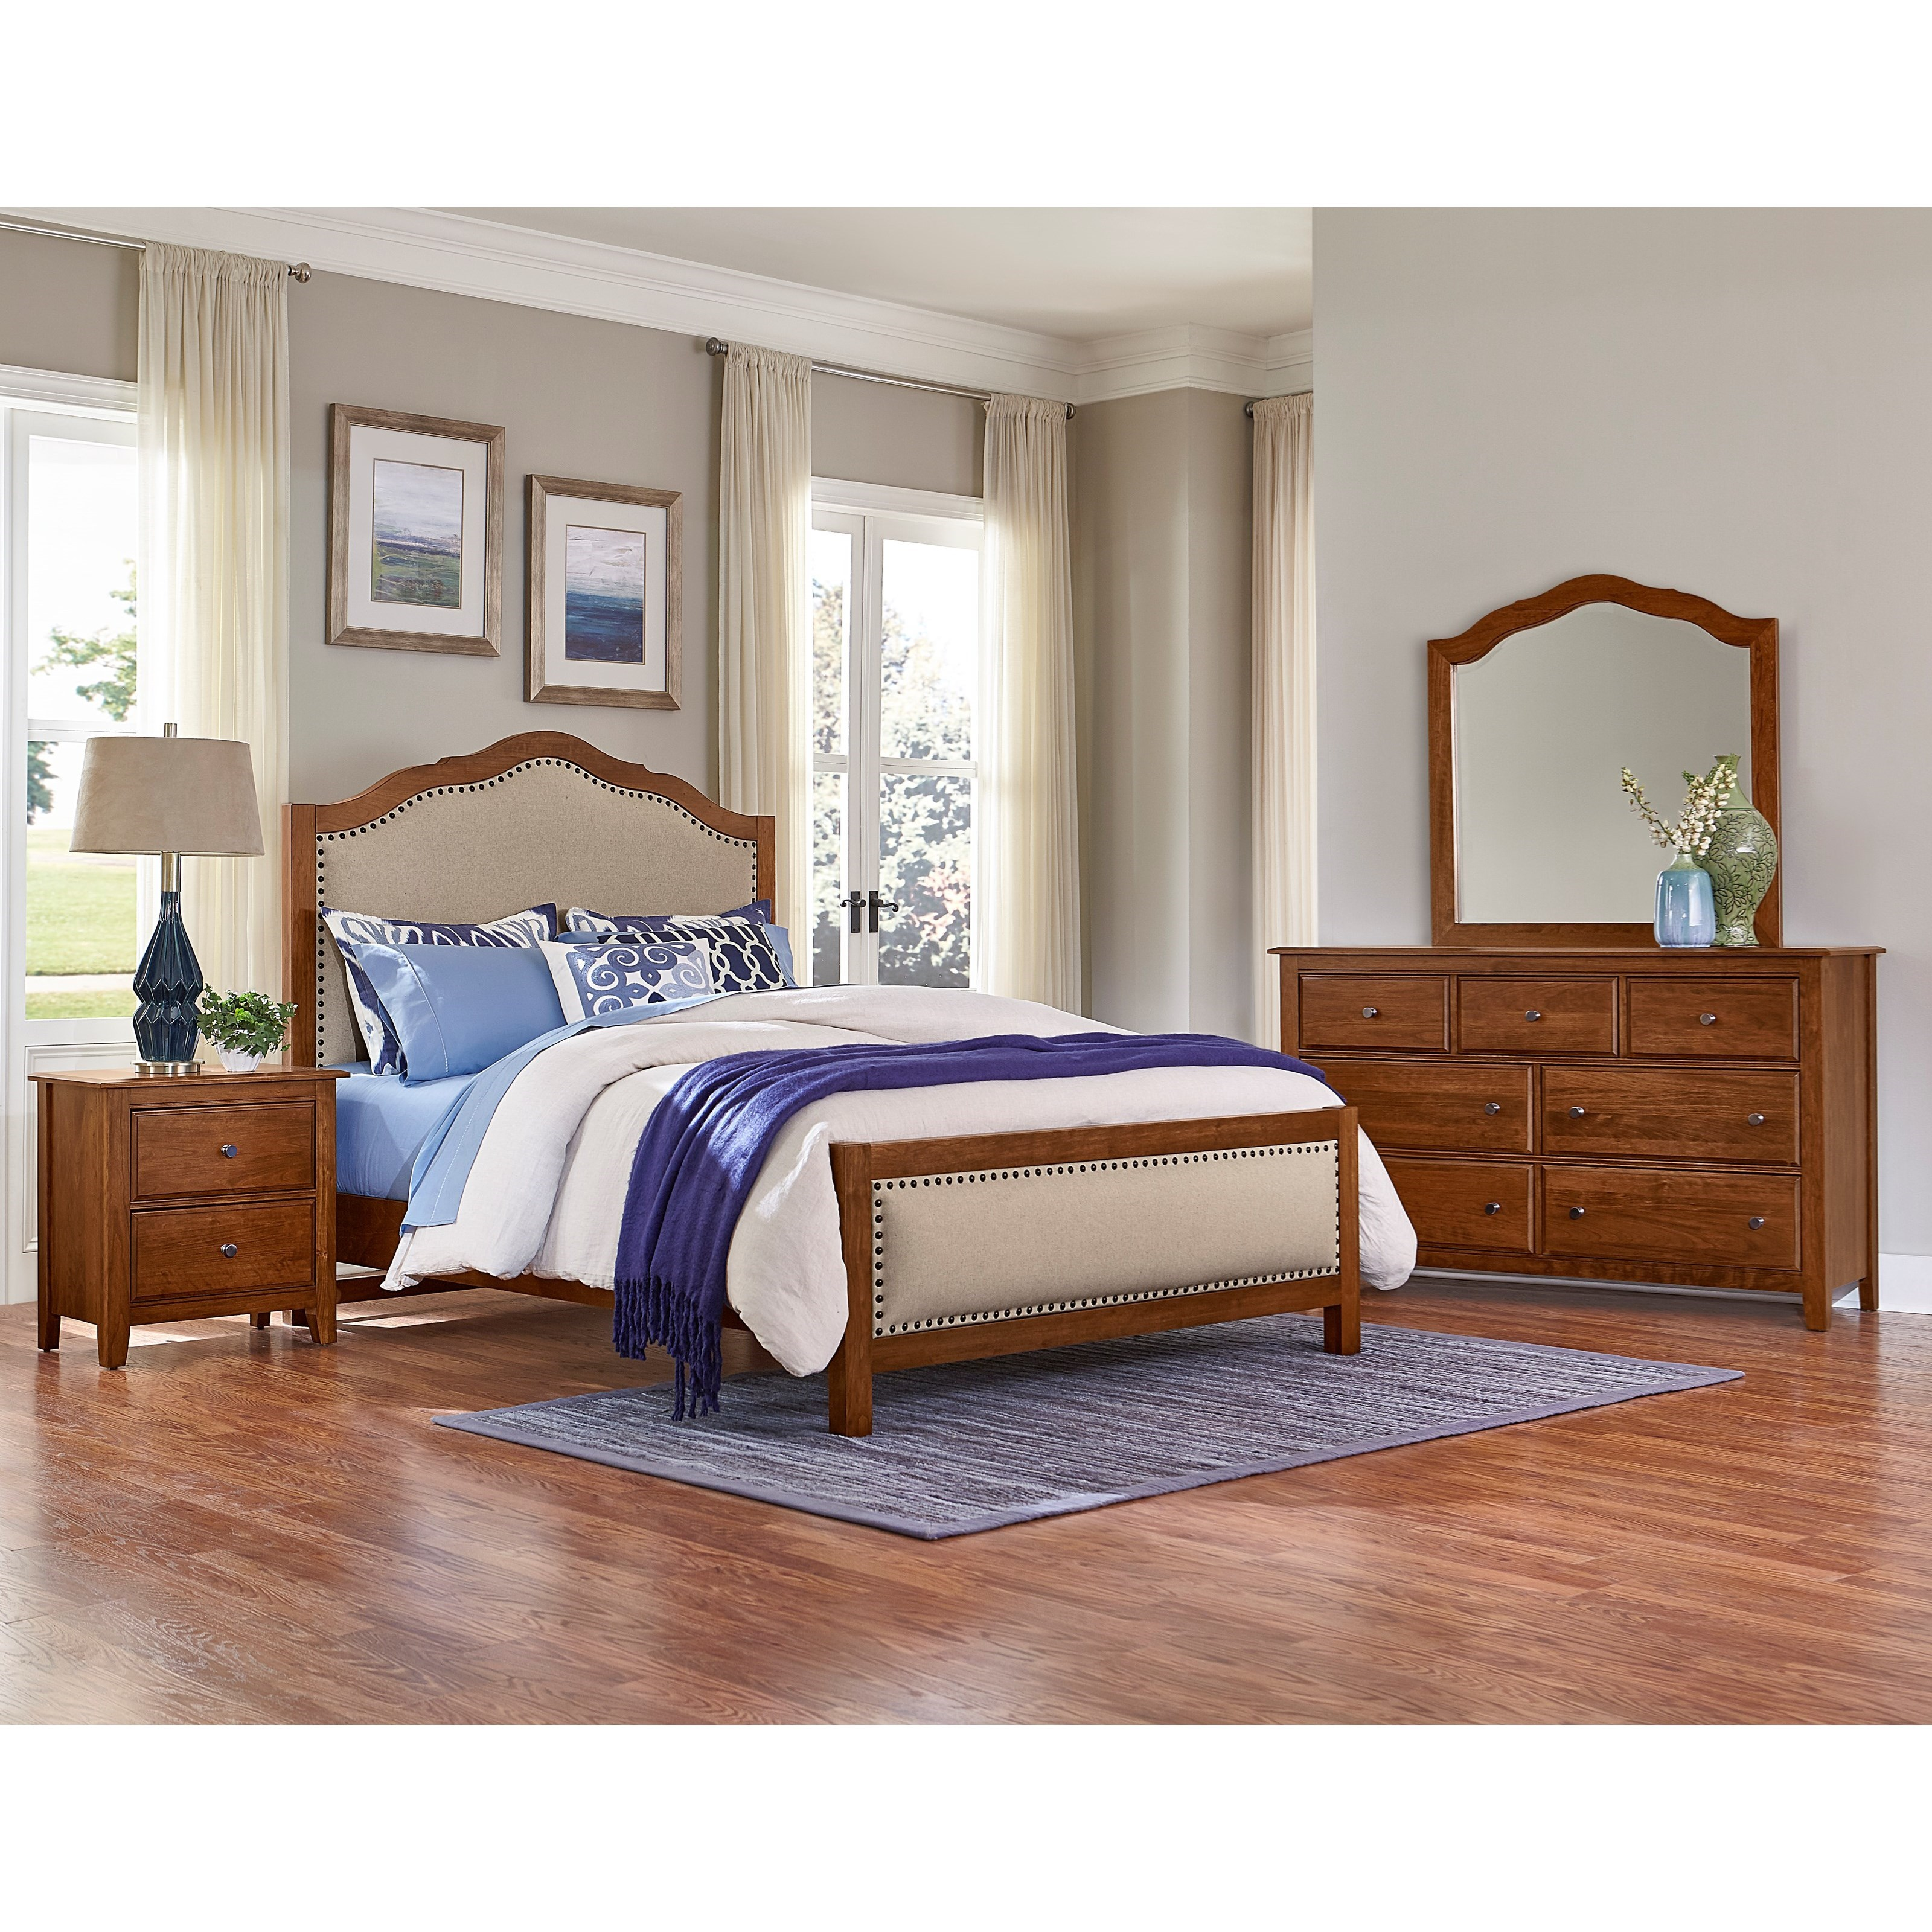 Artisan Choices Queen Bedroom Group by Artisan & Post at Mueller Furniture